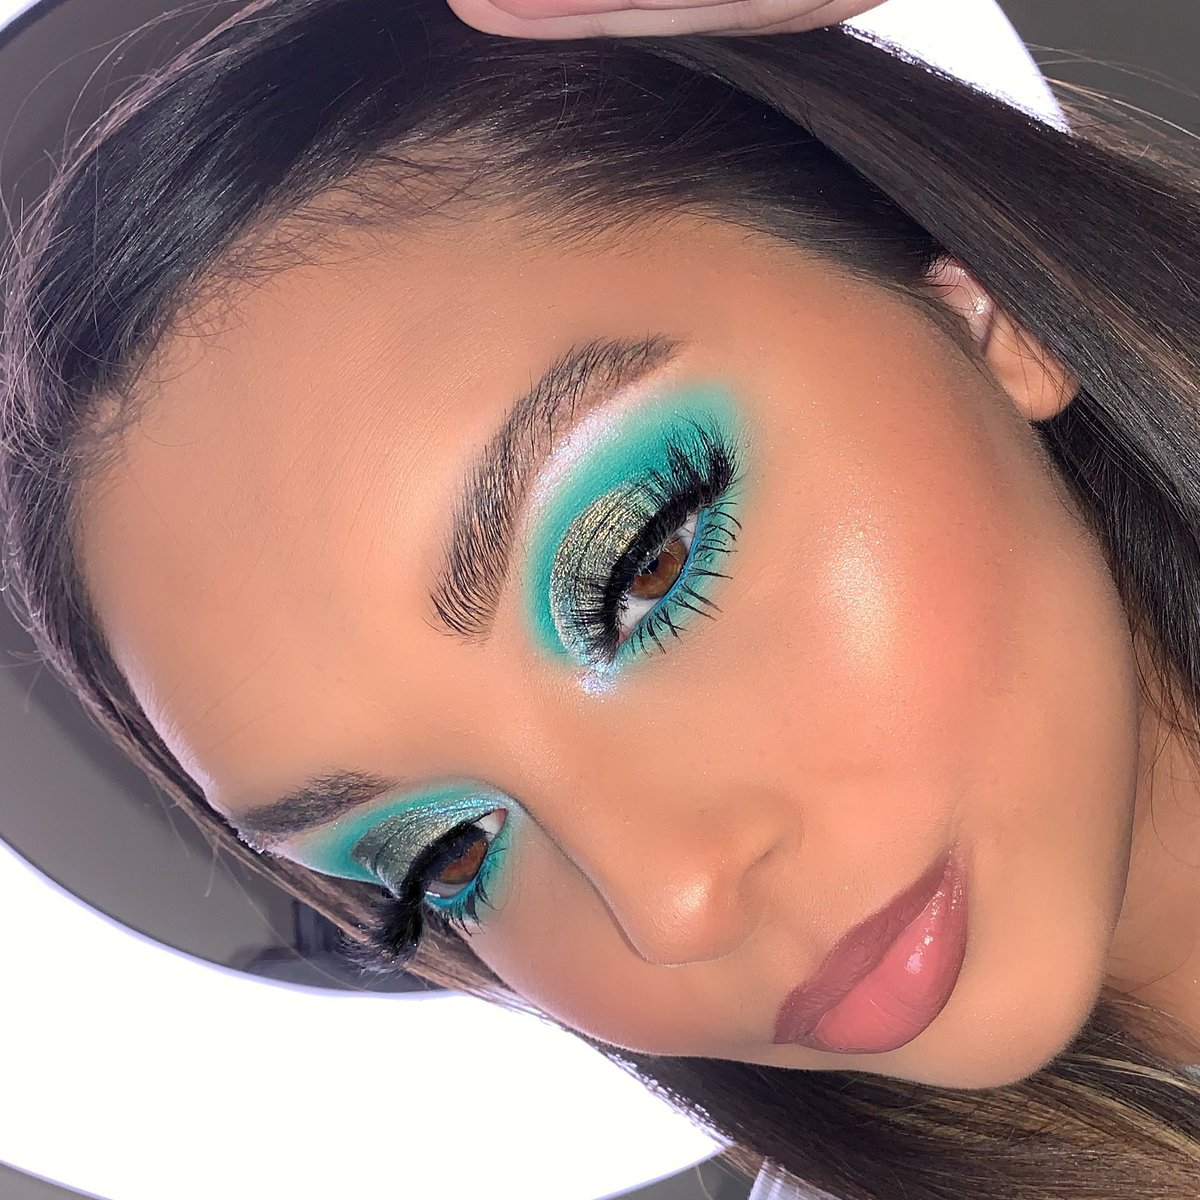 💠 MINTY FRESH 💠 using the @hudabeauty Emerald Obsession Palette 💙 #hudabeauty #makeup #makeupartist #makeuplooks #makeupaddict #makeuplover https://t.co/KXIv0r79oz